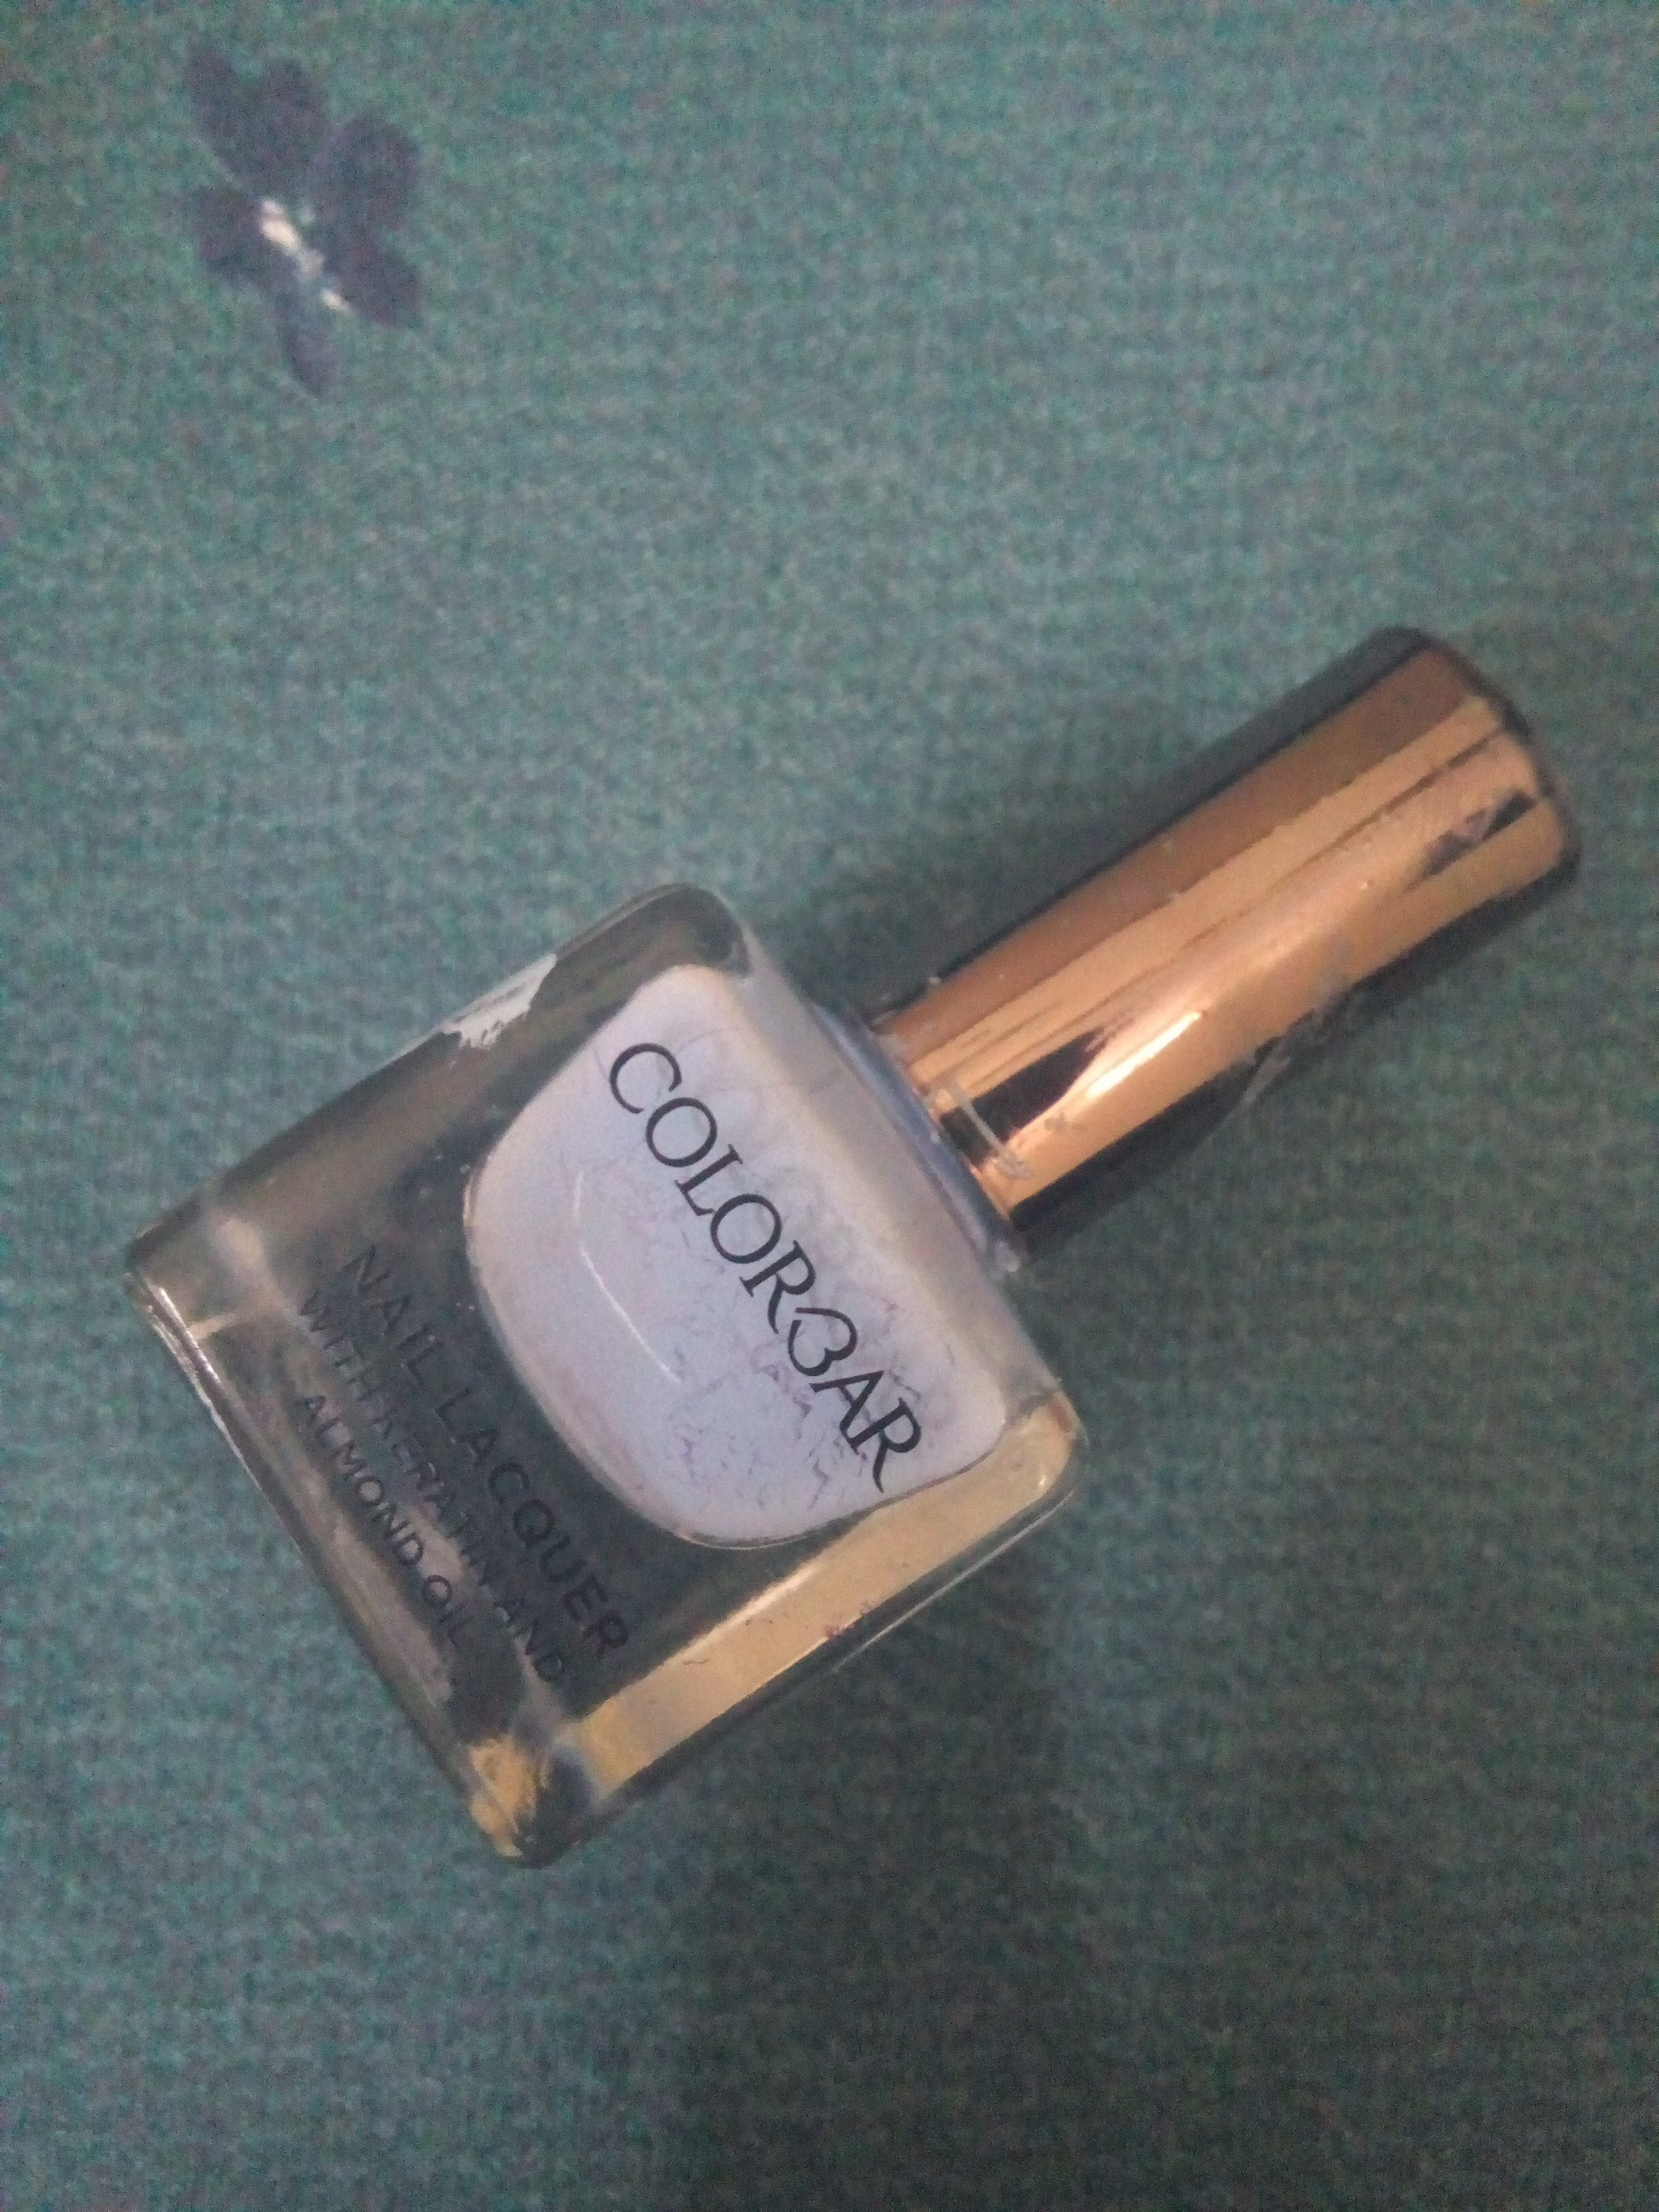 Colorbar Luxe Nail Lacquer-Quickly dries after applying-By gurnoor_kaur